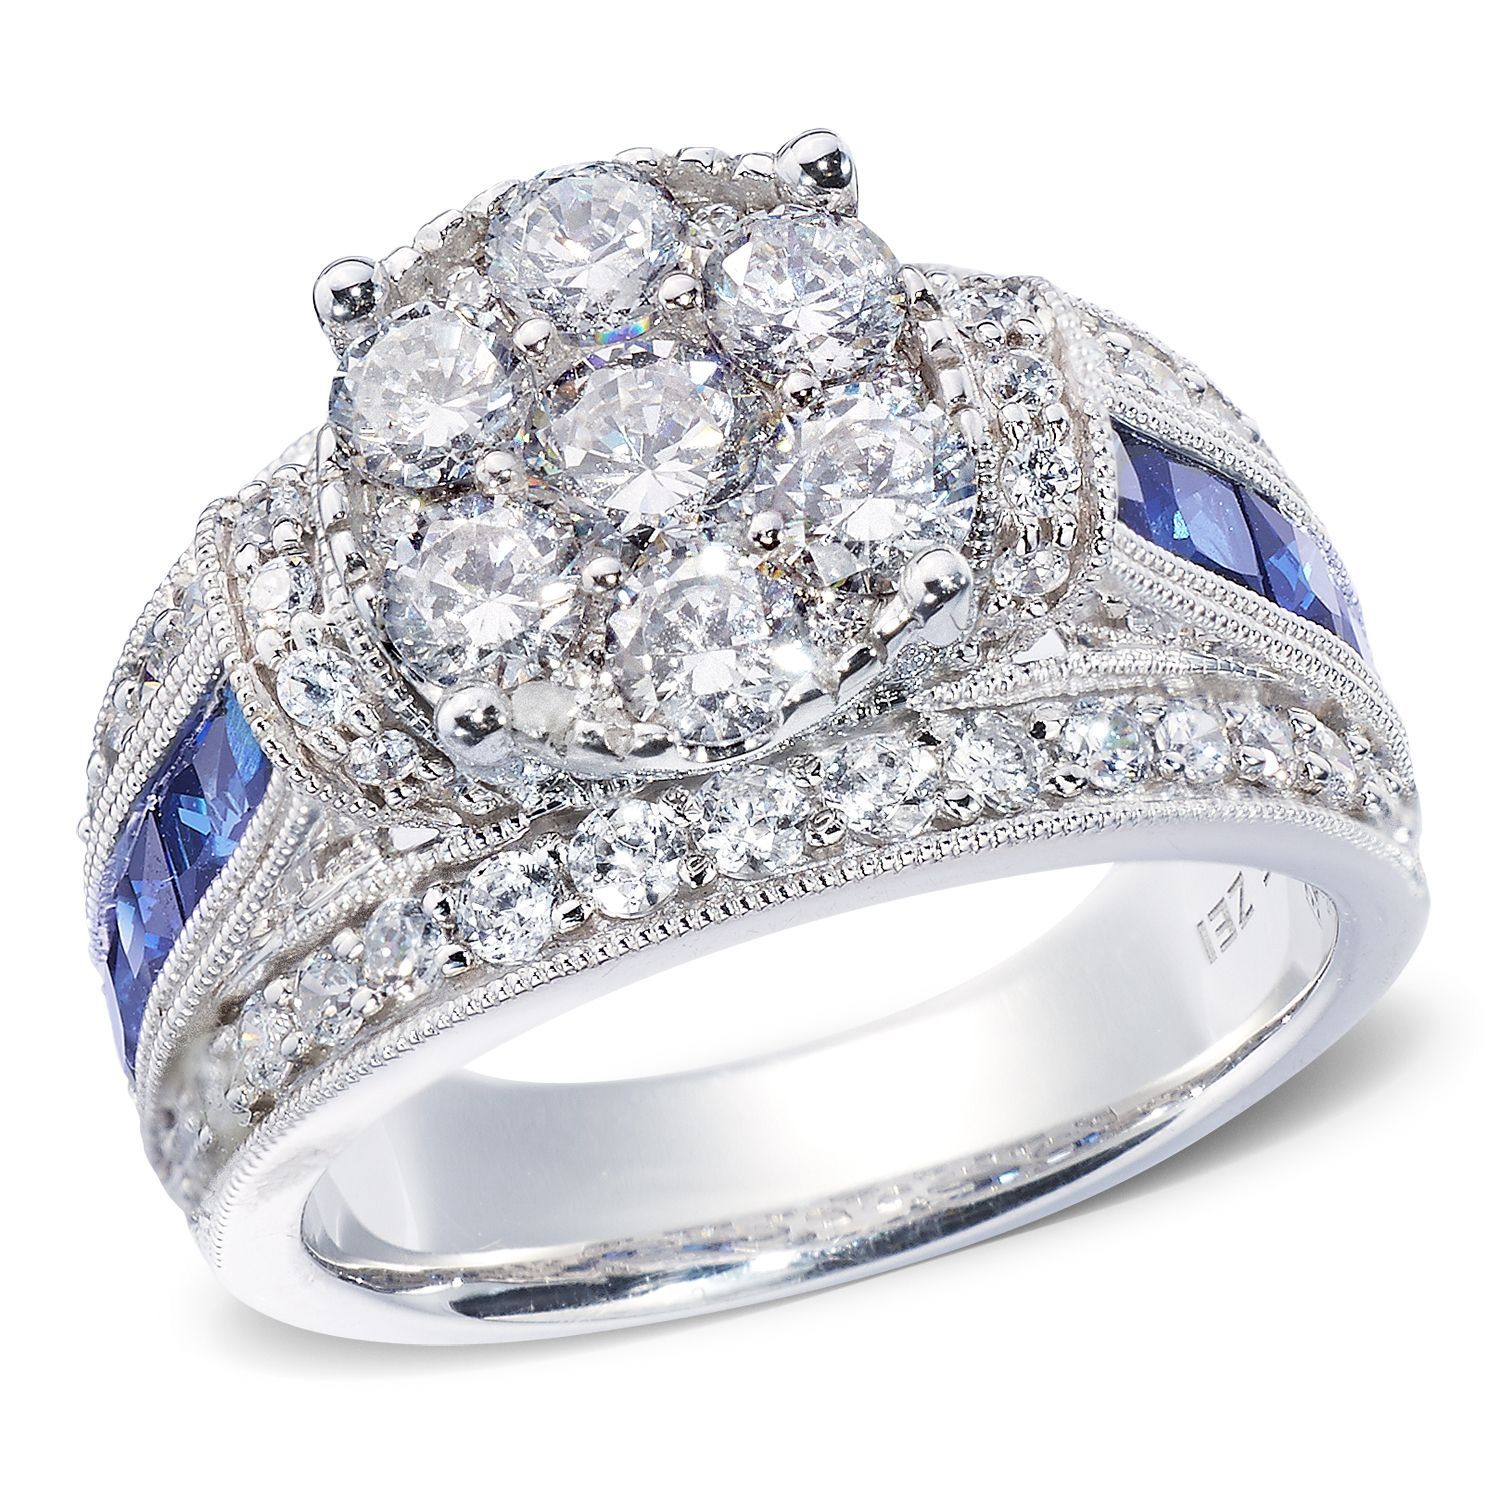 1 95 CT T W Diamond and Sapphire Engagement Ring in 14K White or